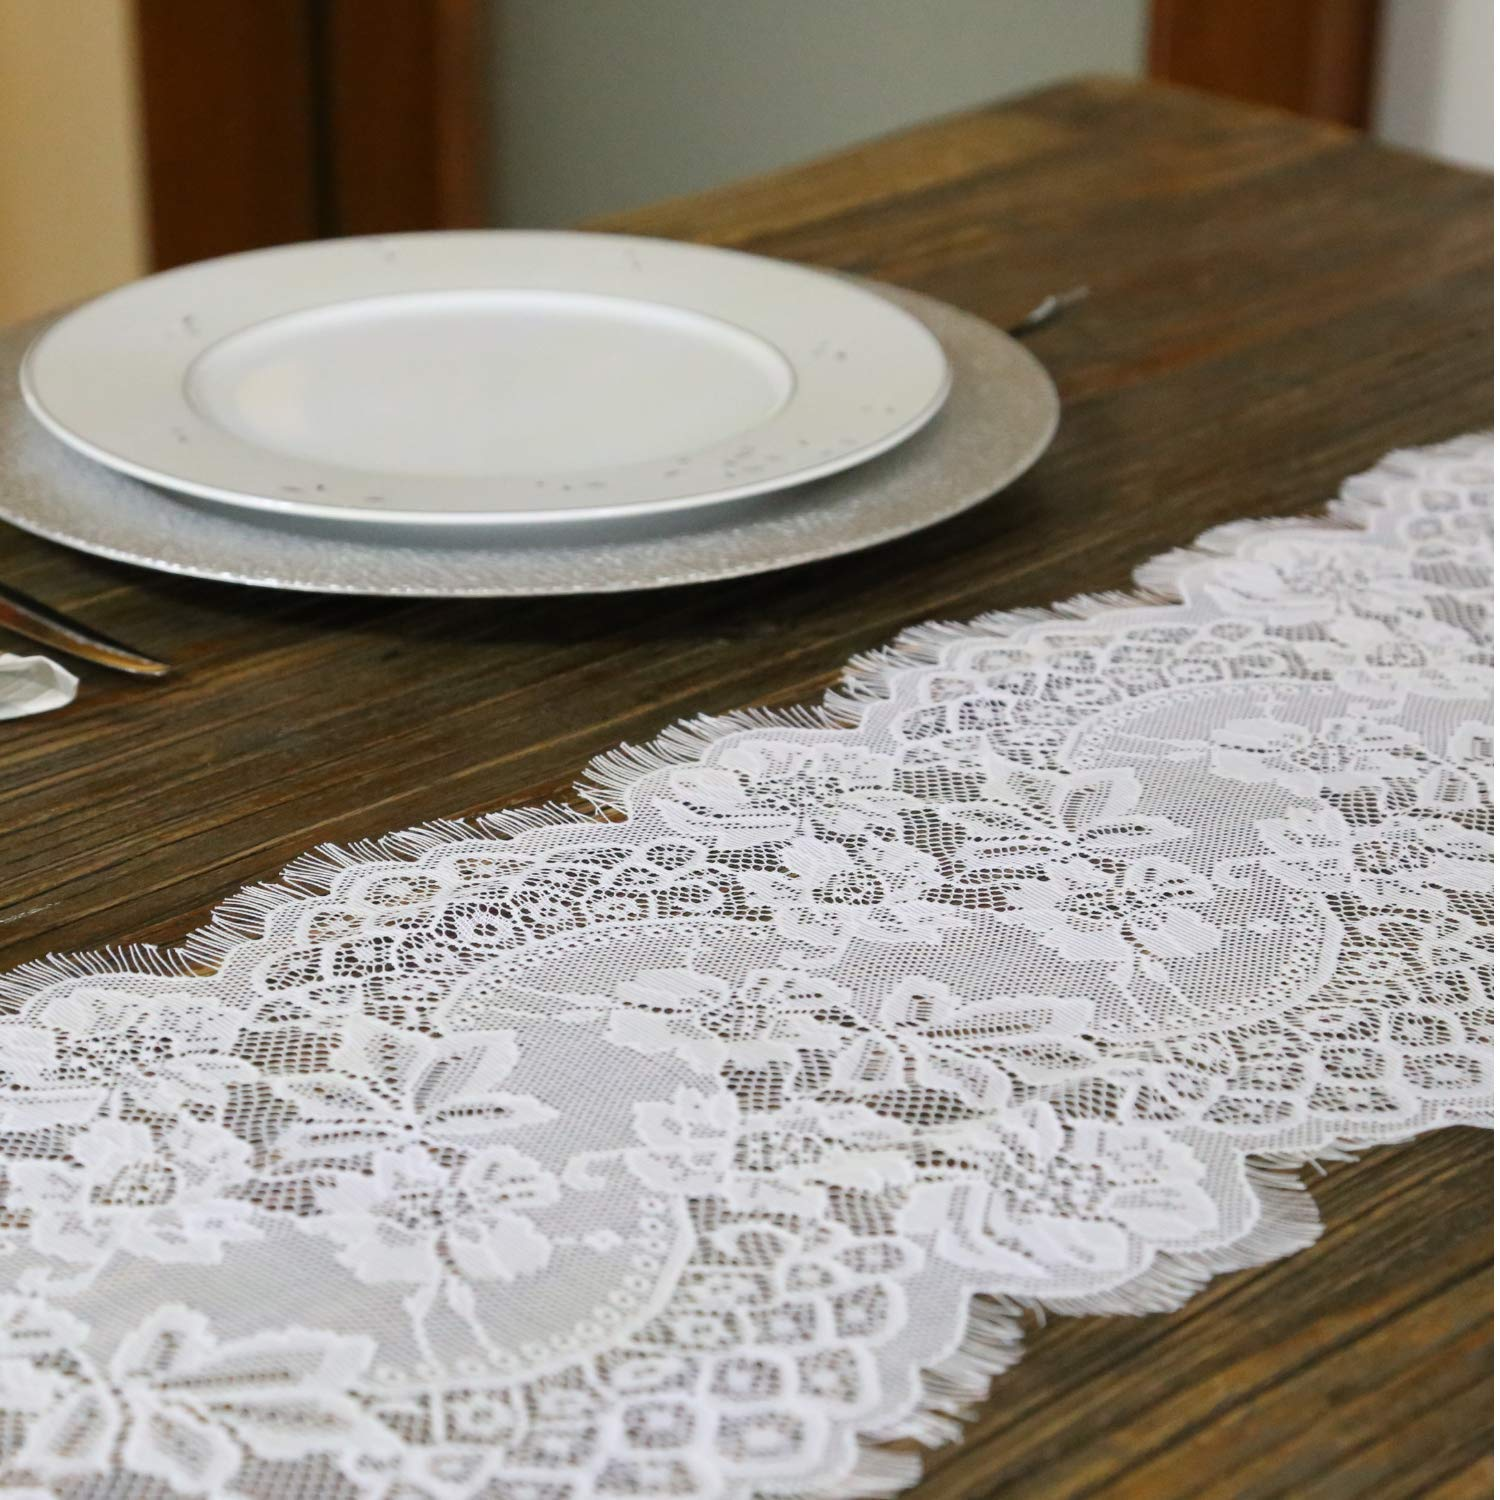 Feminen White Table Runner Elegant Chic Wedding Lace Runners Great for Spring Summer and Wedding Decor 12''x120'' (2 Pieces)